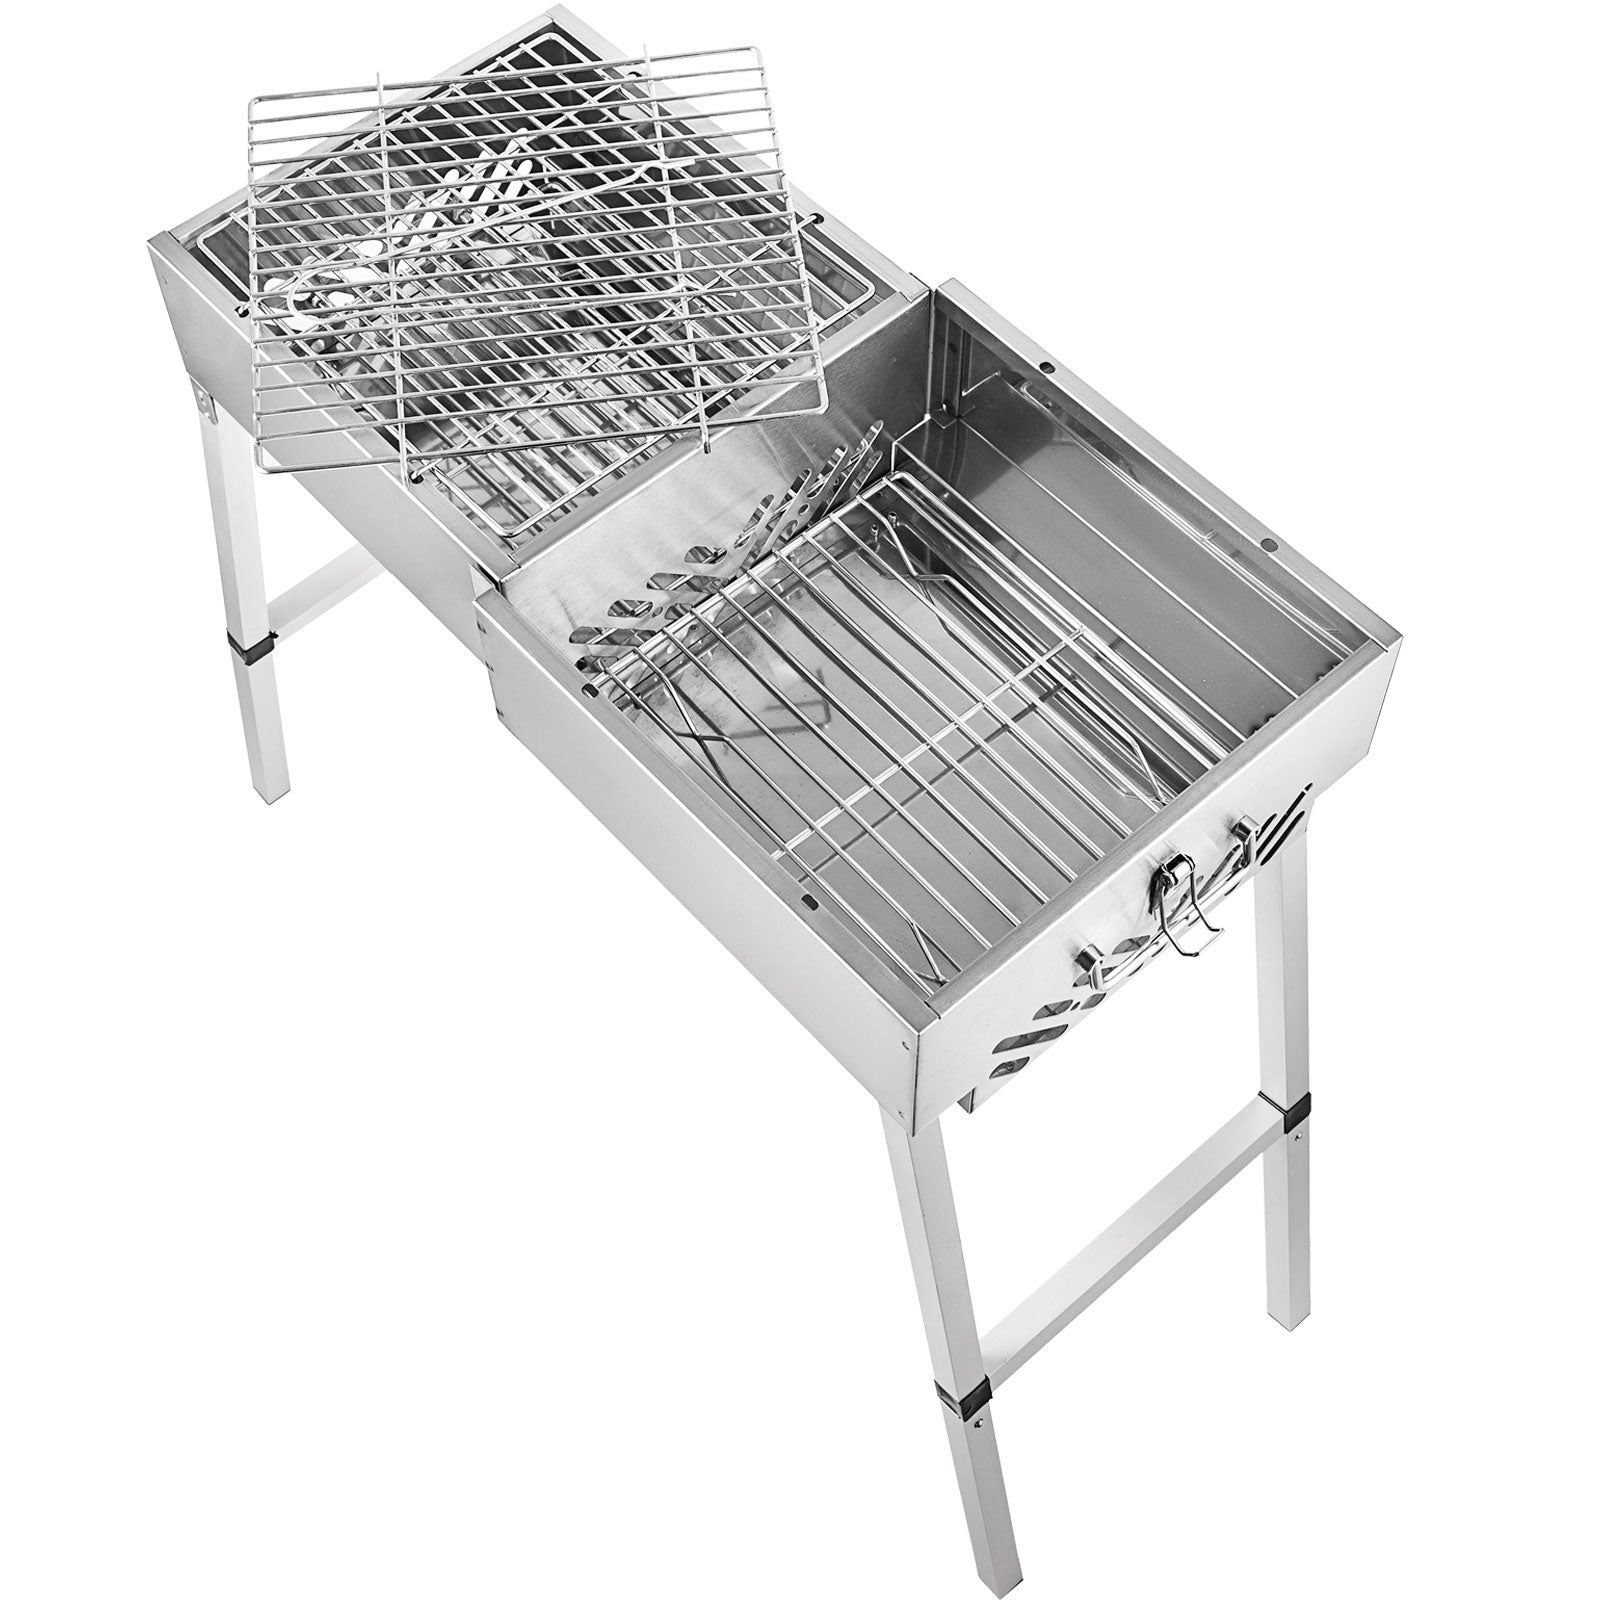 Bbq Charcoal Barbecue Grill 24'' Stainless Steel Folding Picnic Stove Camp